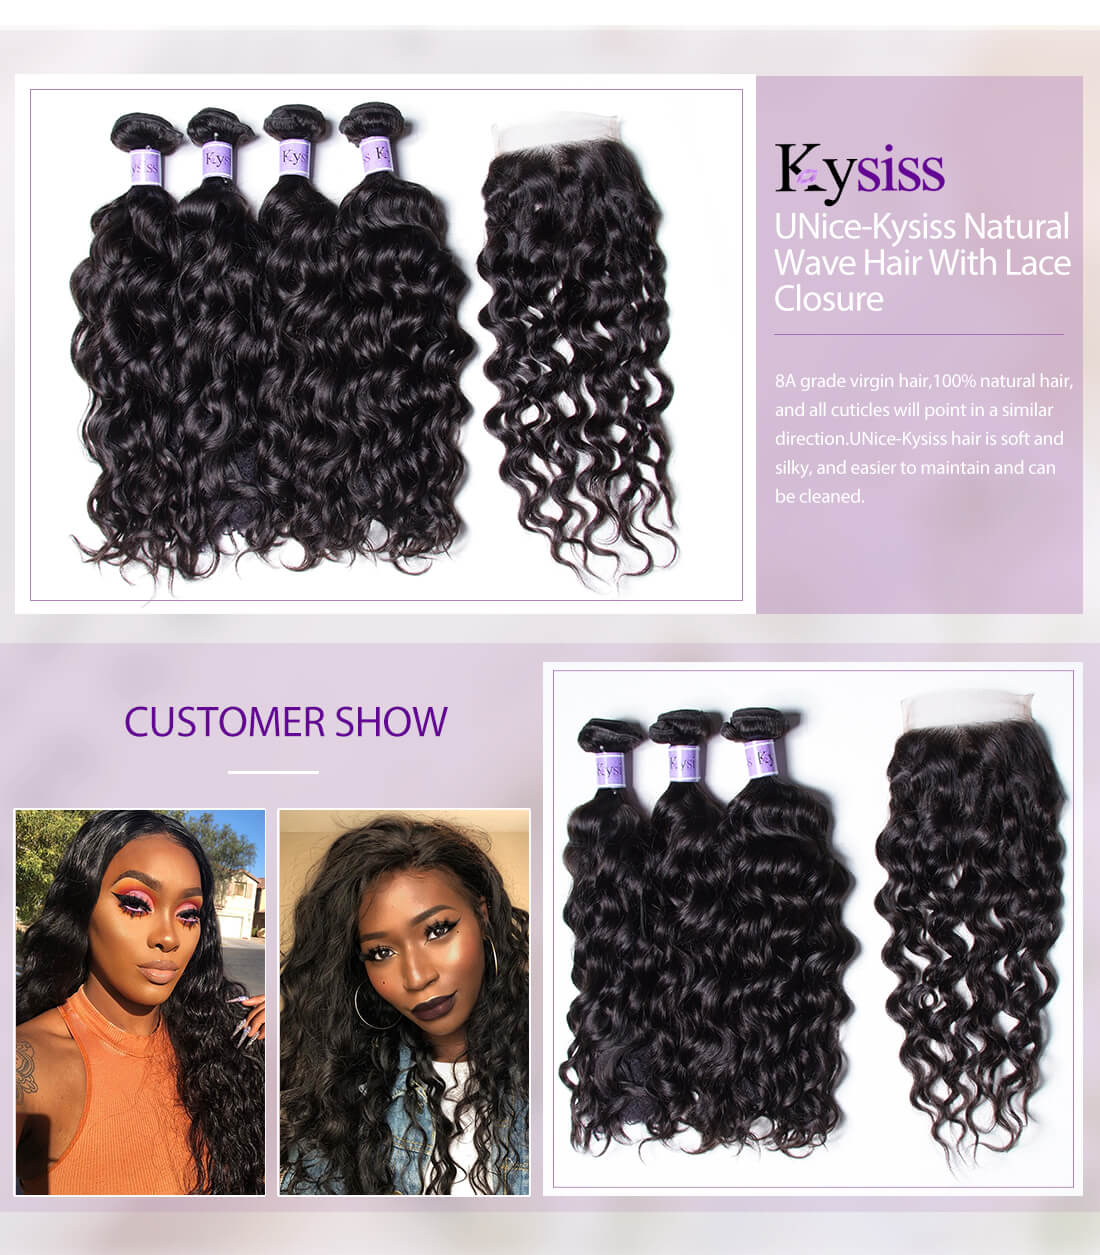 UNice Hair Kysiss Series Natural Wave Hair With Lace Closure